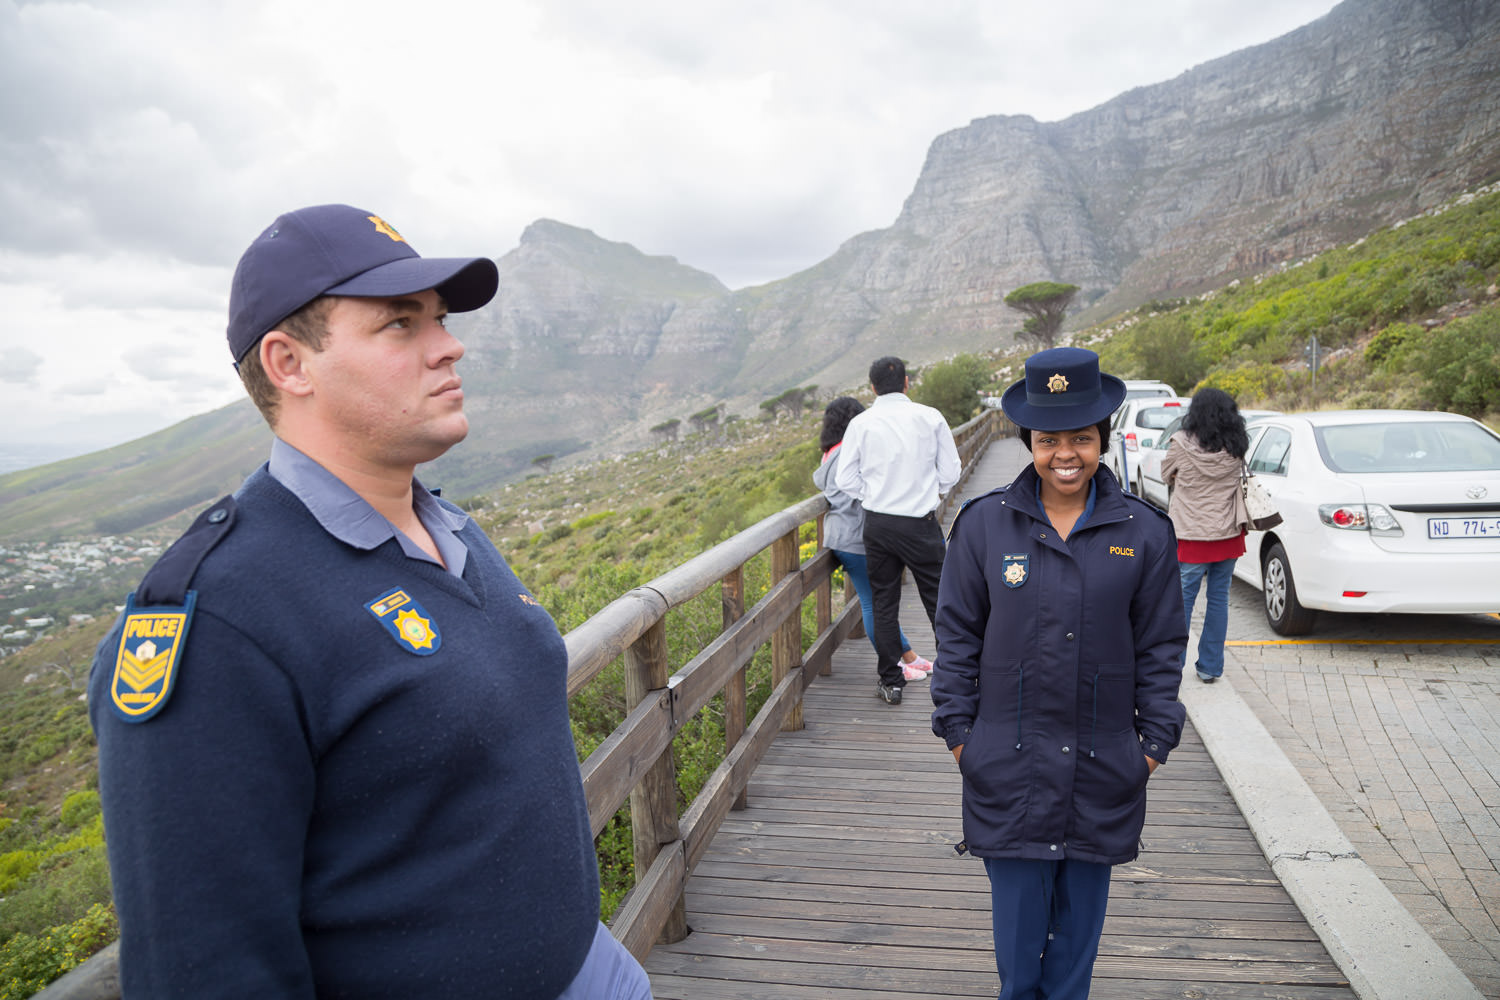 My Table Mountain Tour Guides